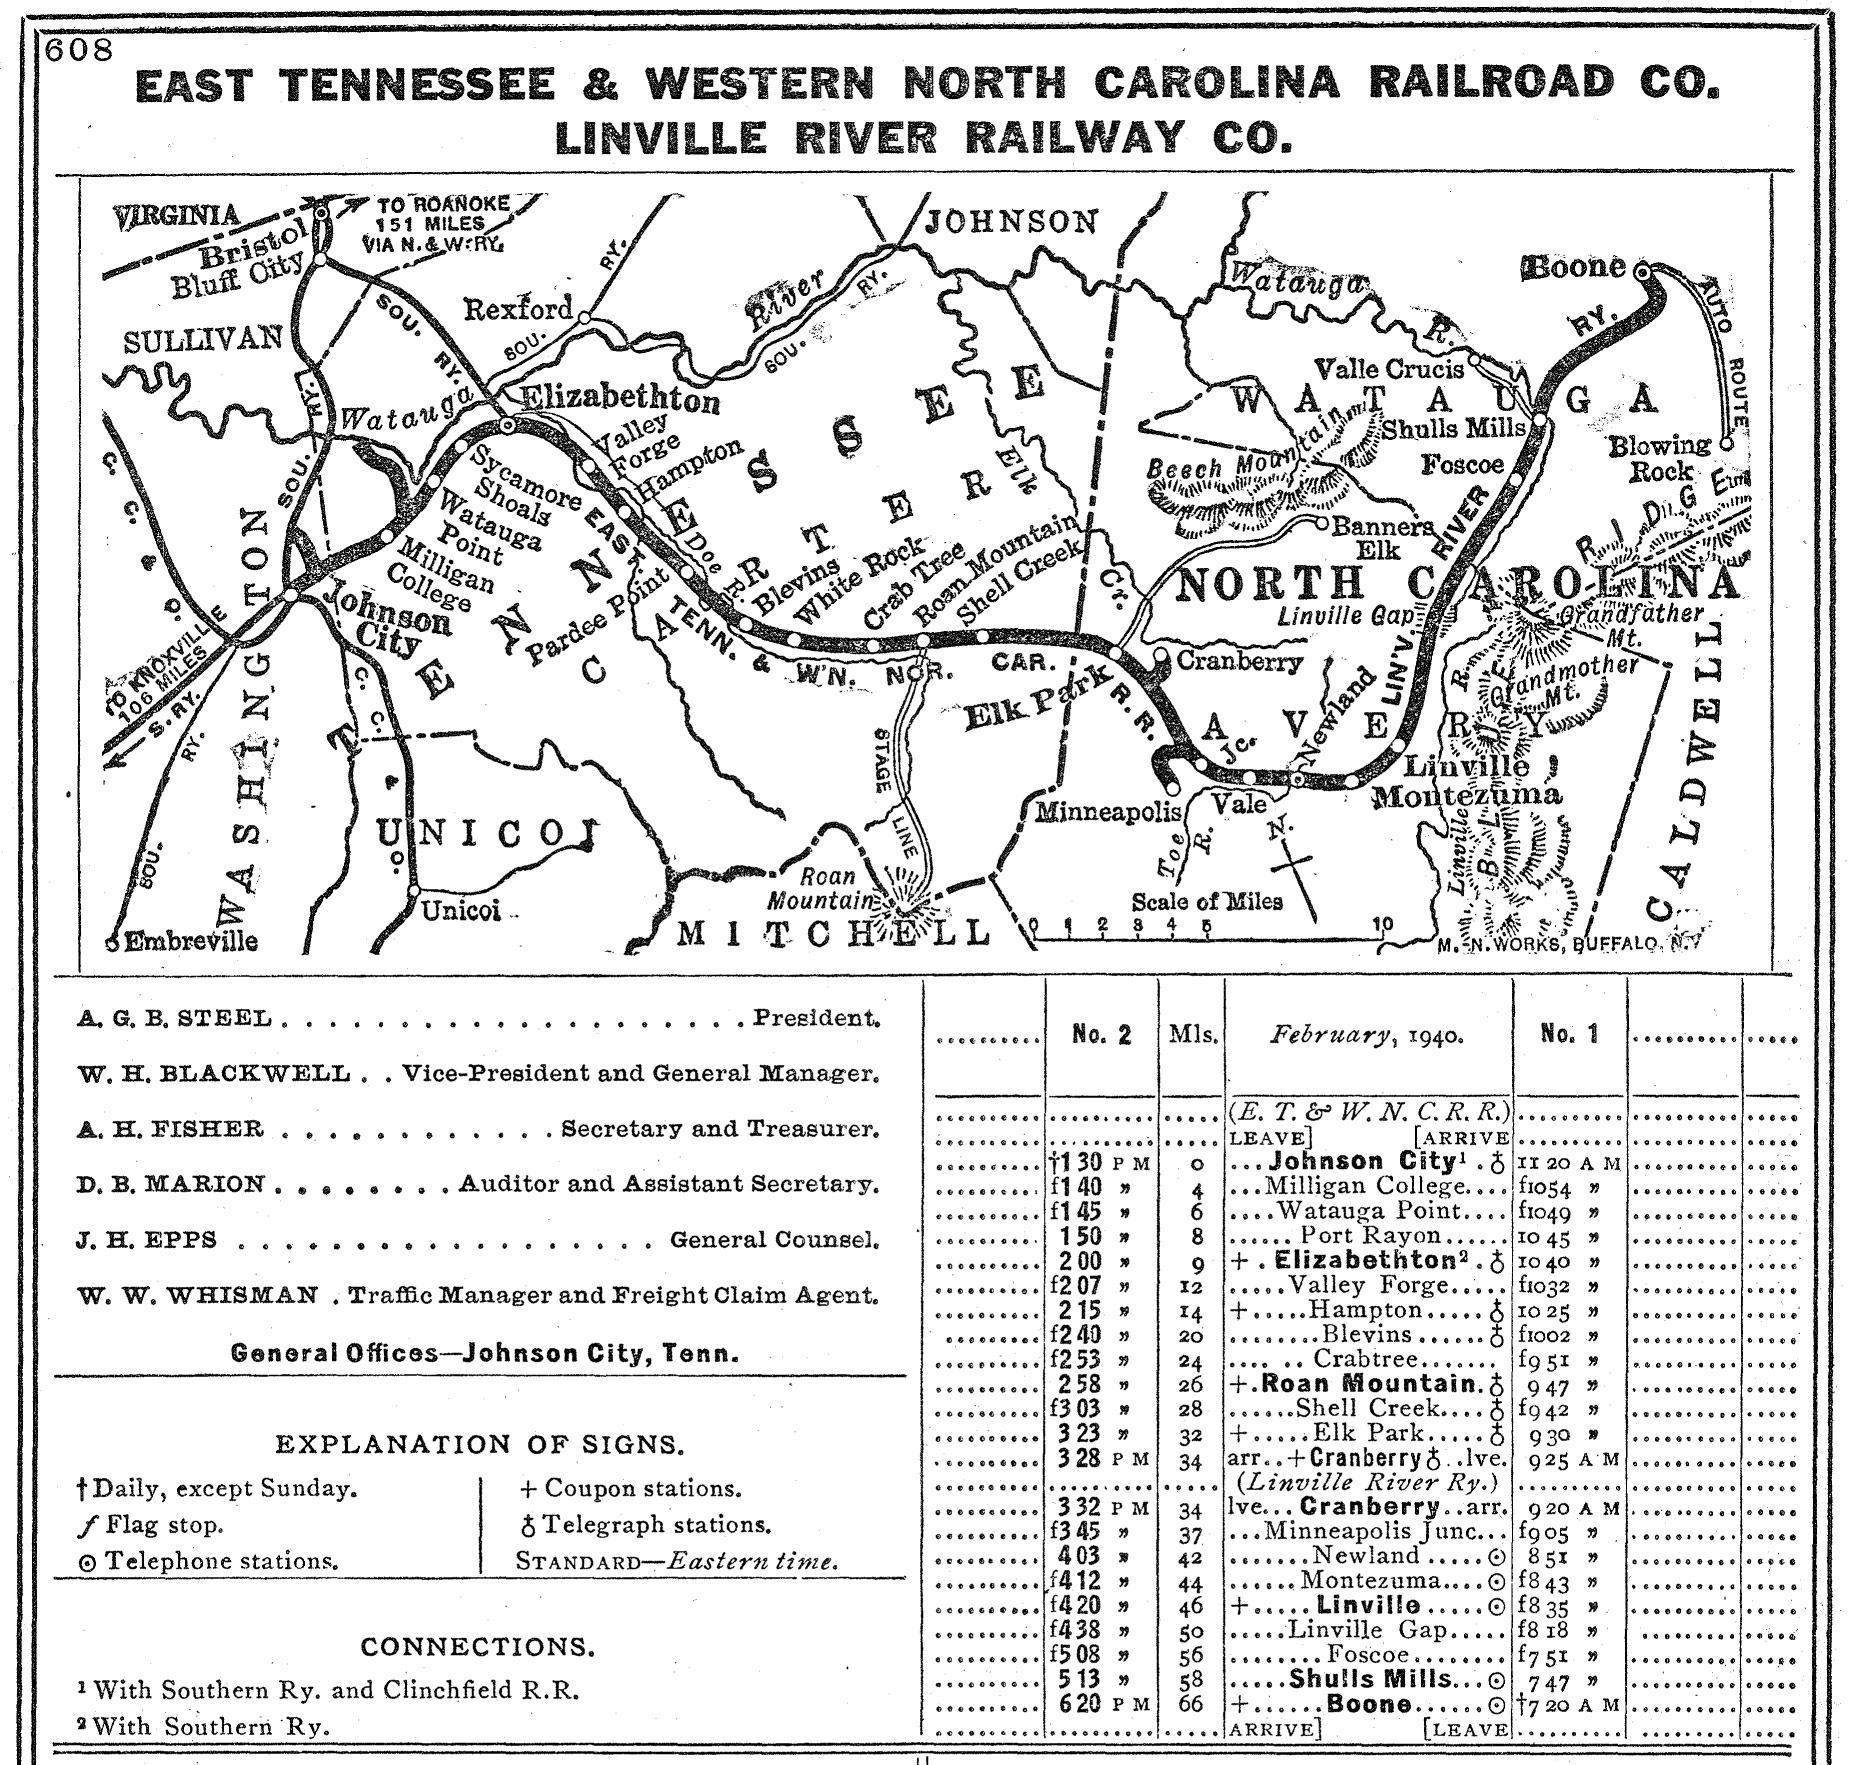 The East Tennessee Western North Carolina Railroad - East tennessee map